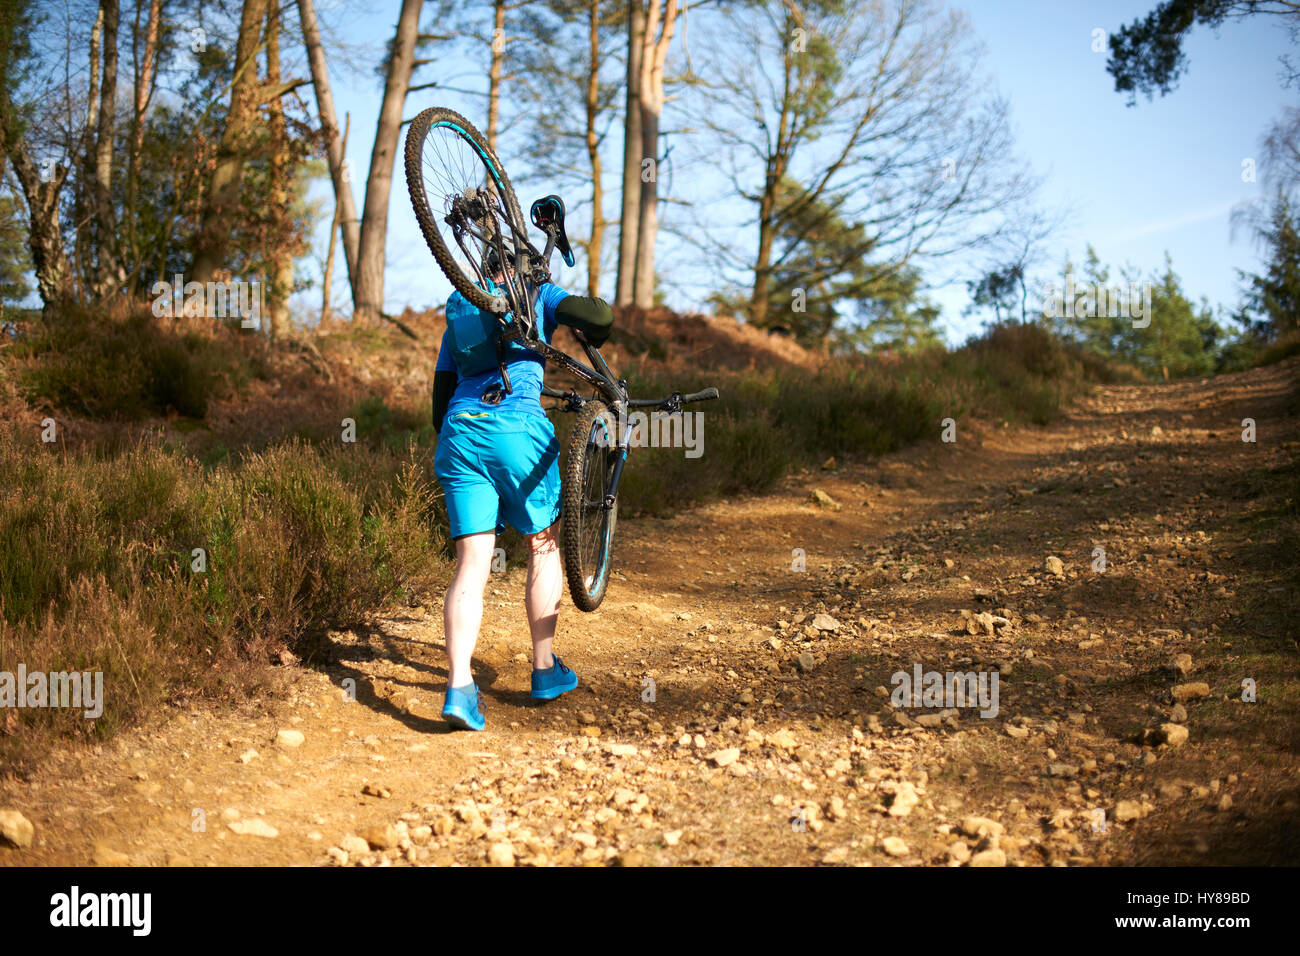 A man carries his mountain bike in the woods - Stock Image